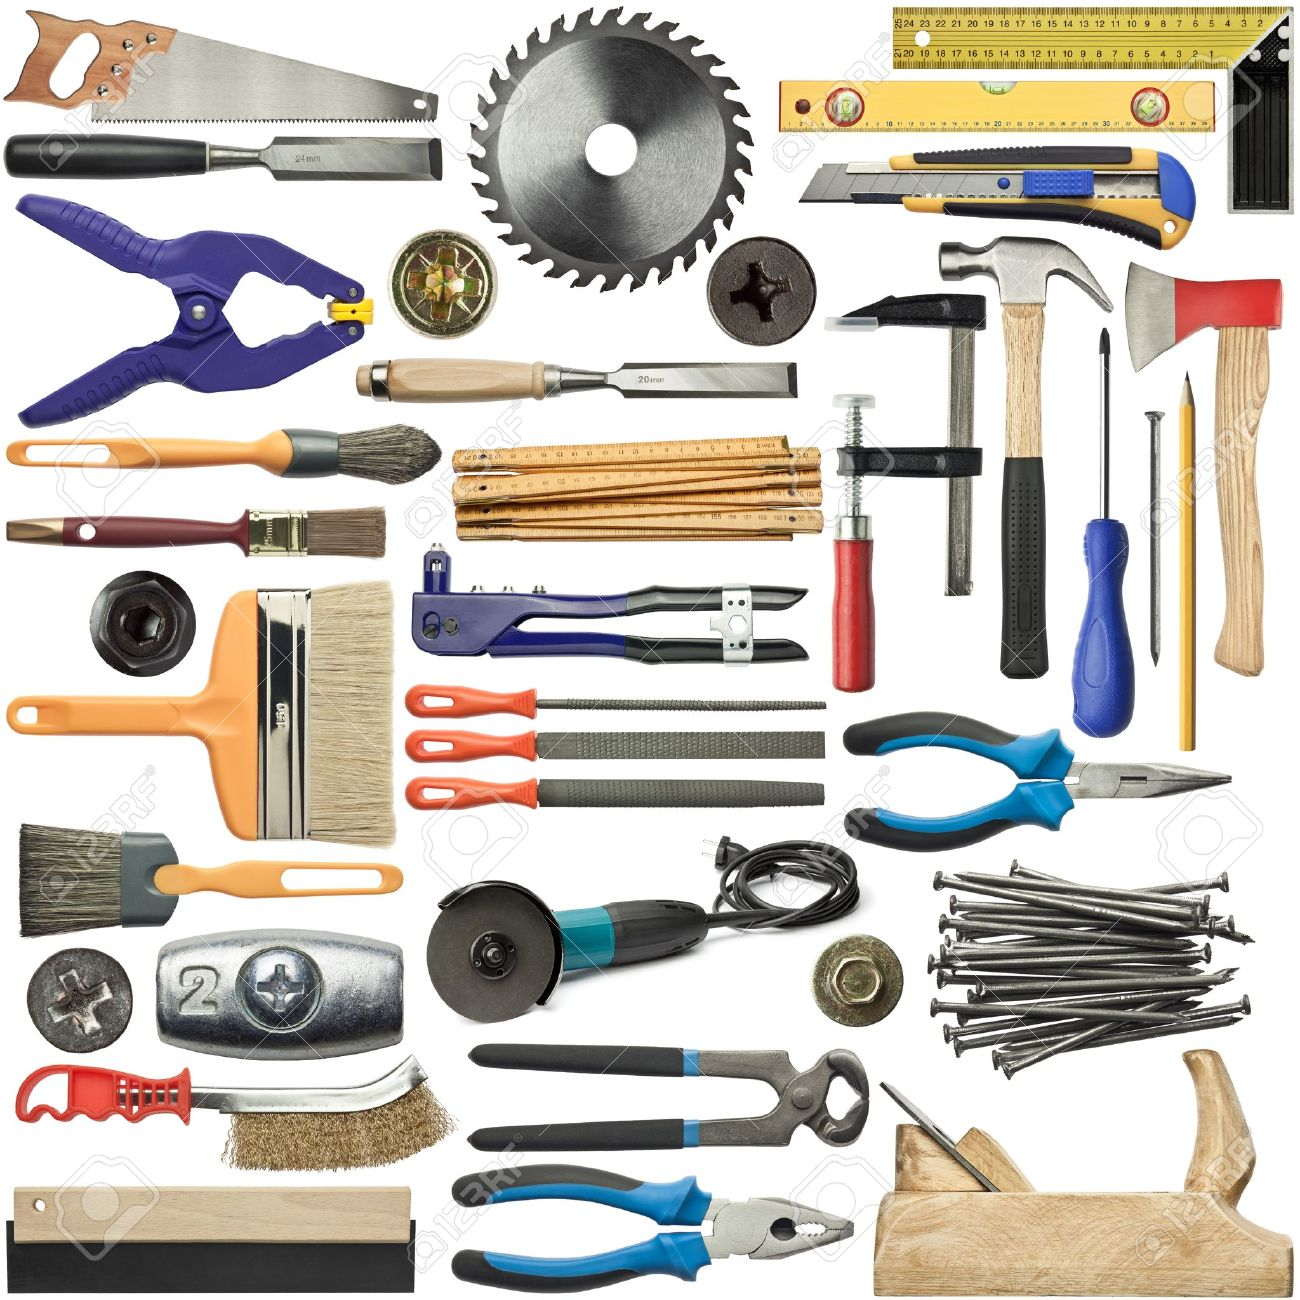 Tools for wood, metal and other construction work. Stock Photo - 11764803